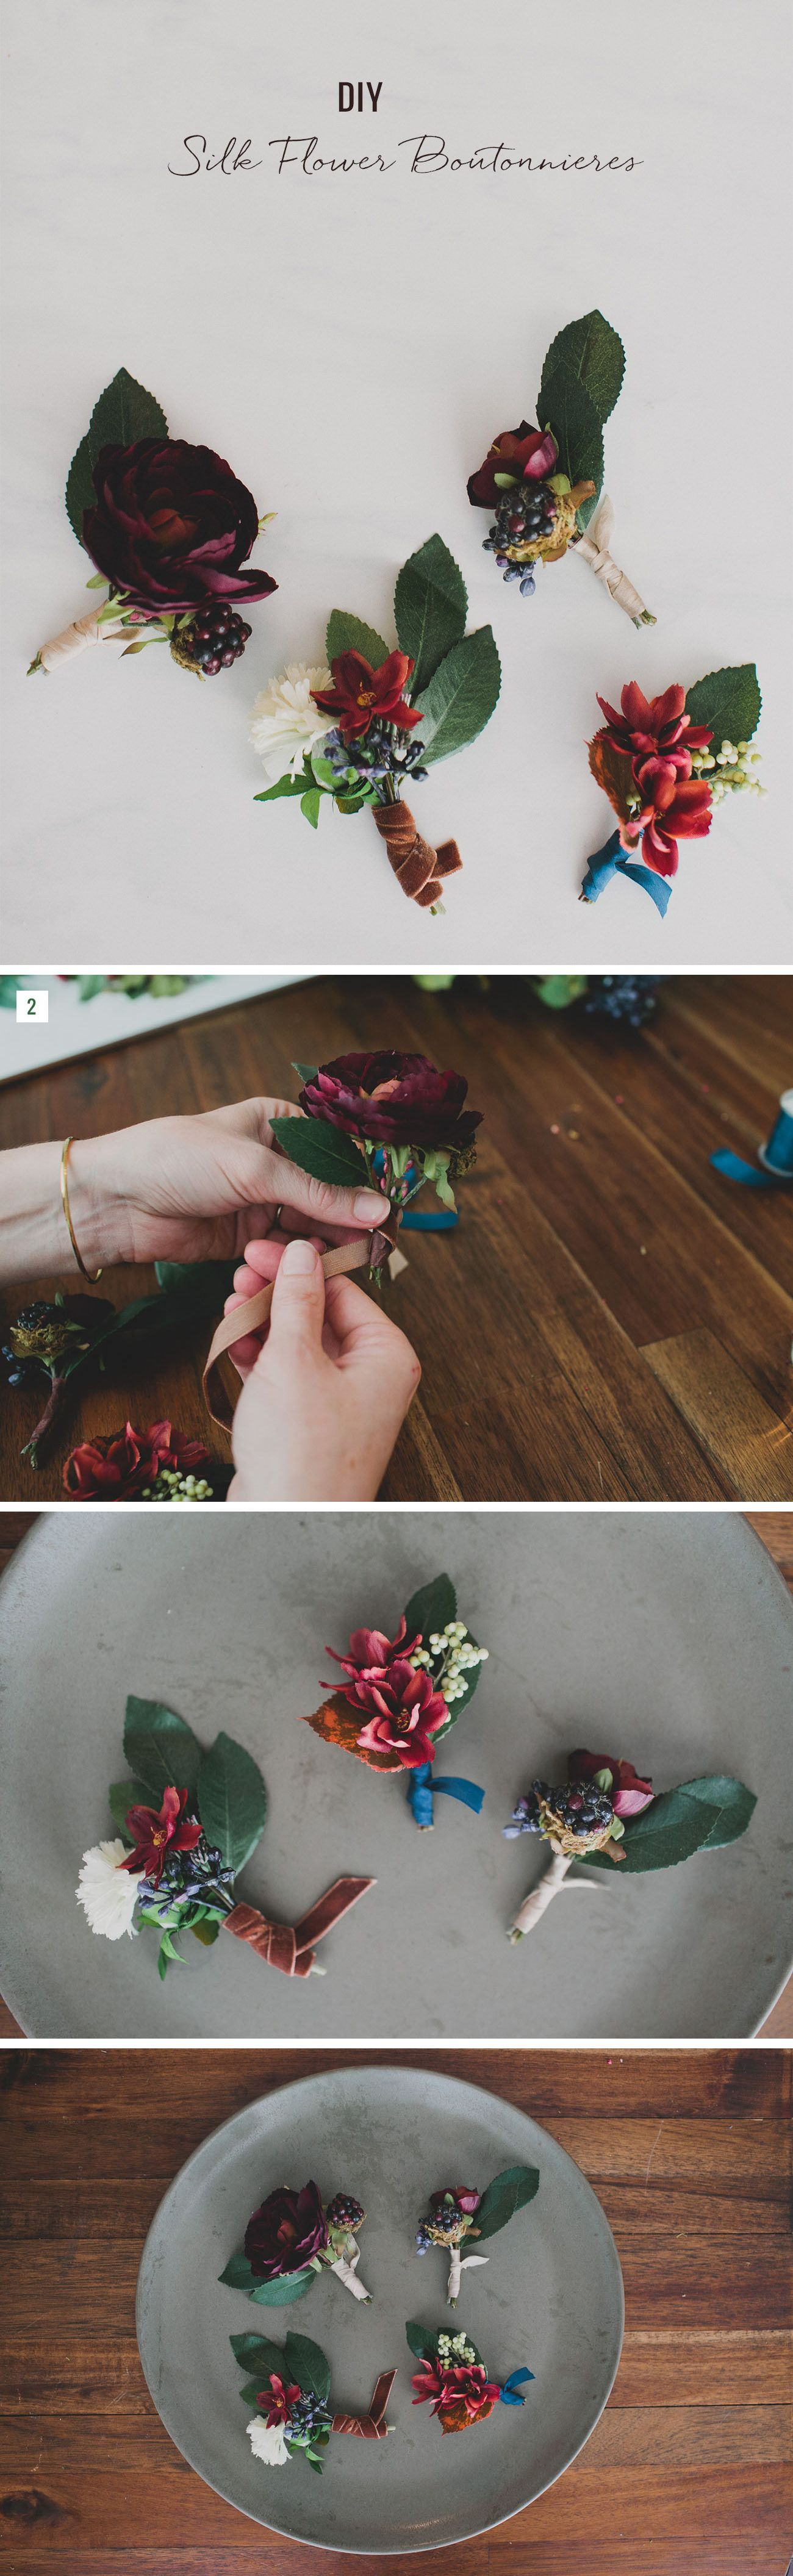 Diy Silk Flower Boutonnieres Beauty And The Beast